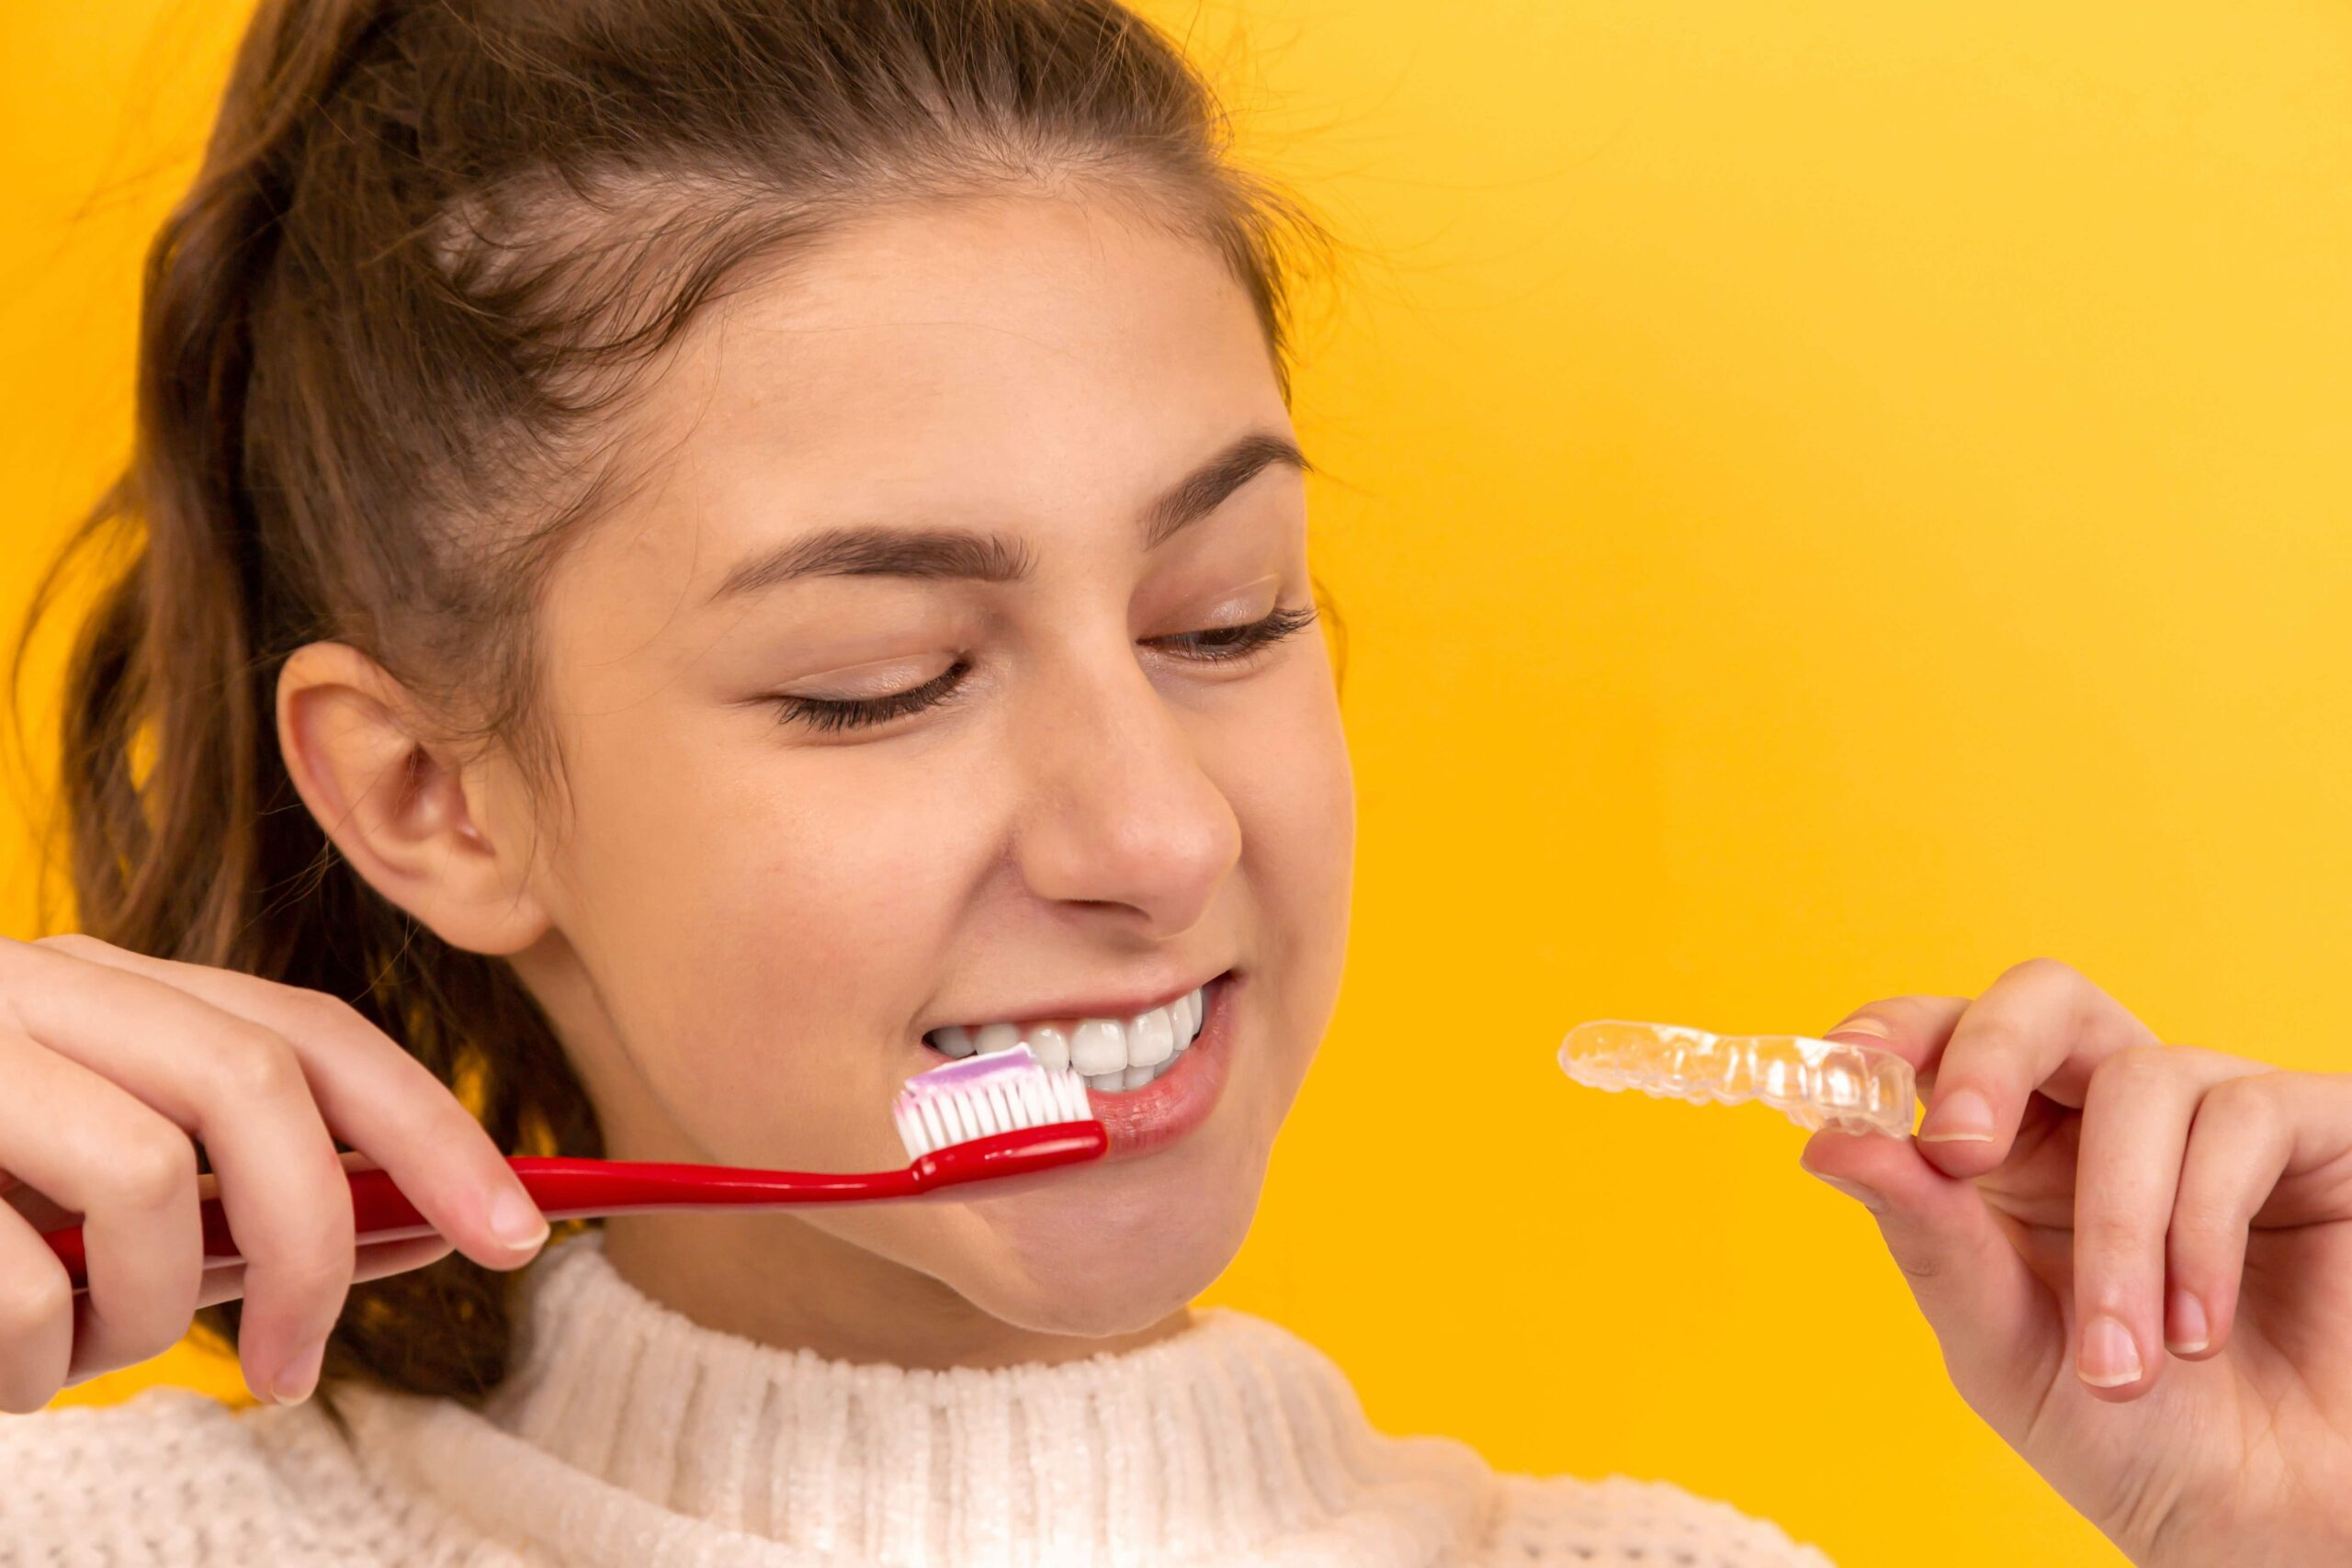 3 Crucial Tips To Know While Caring For Your Child's Oral Health